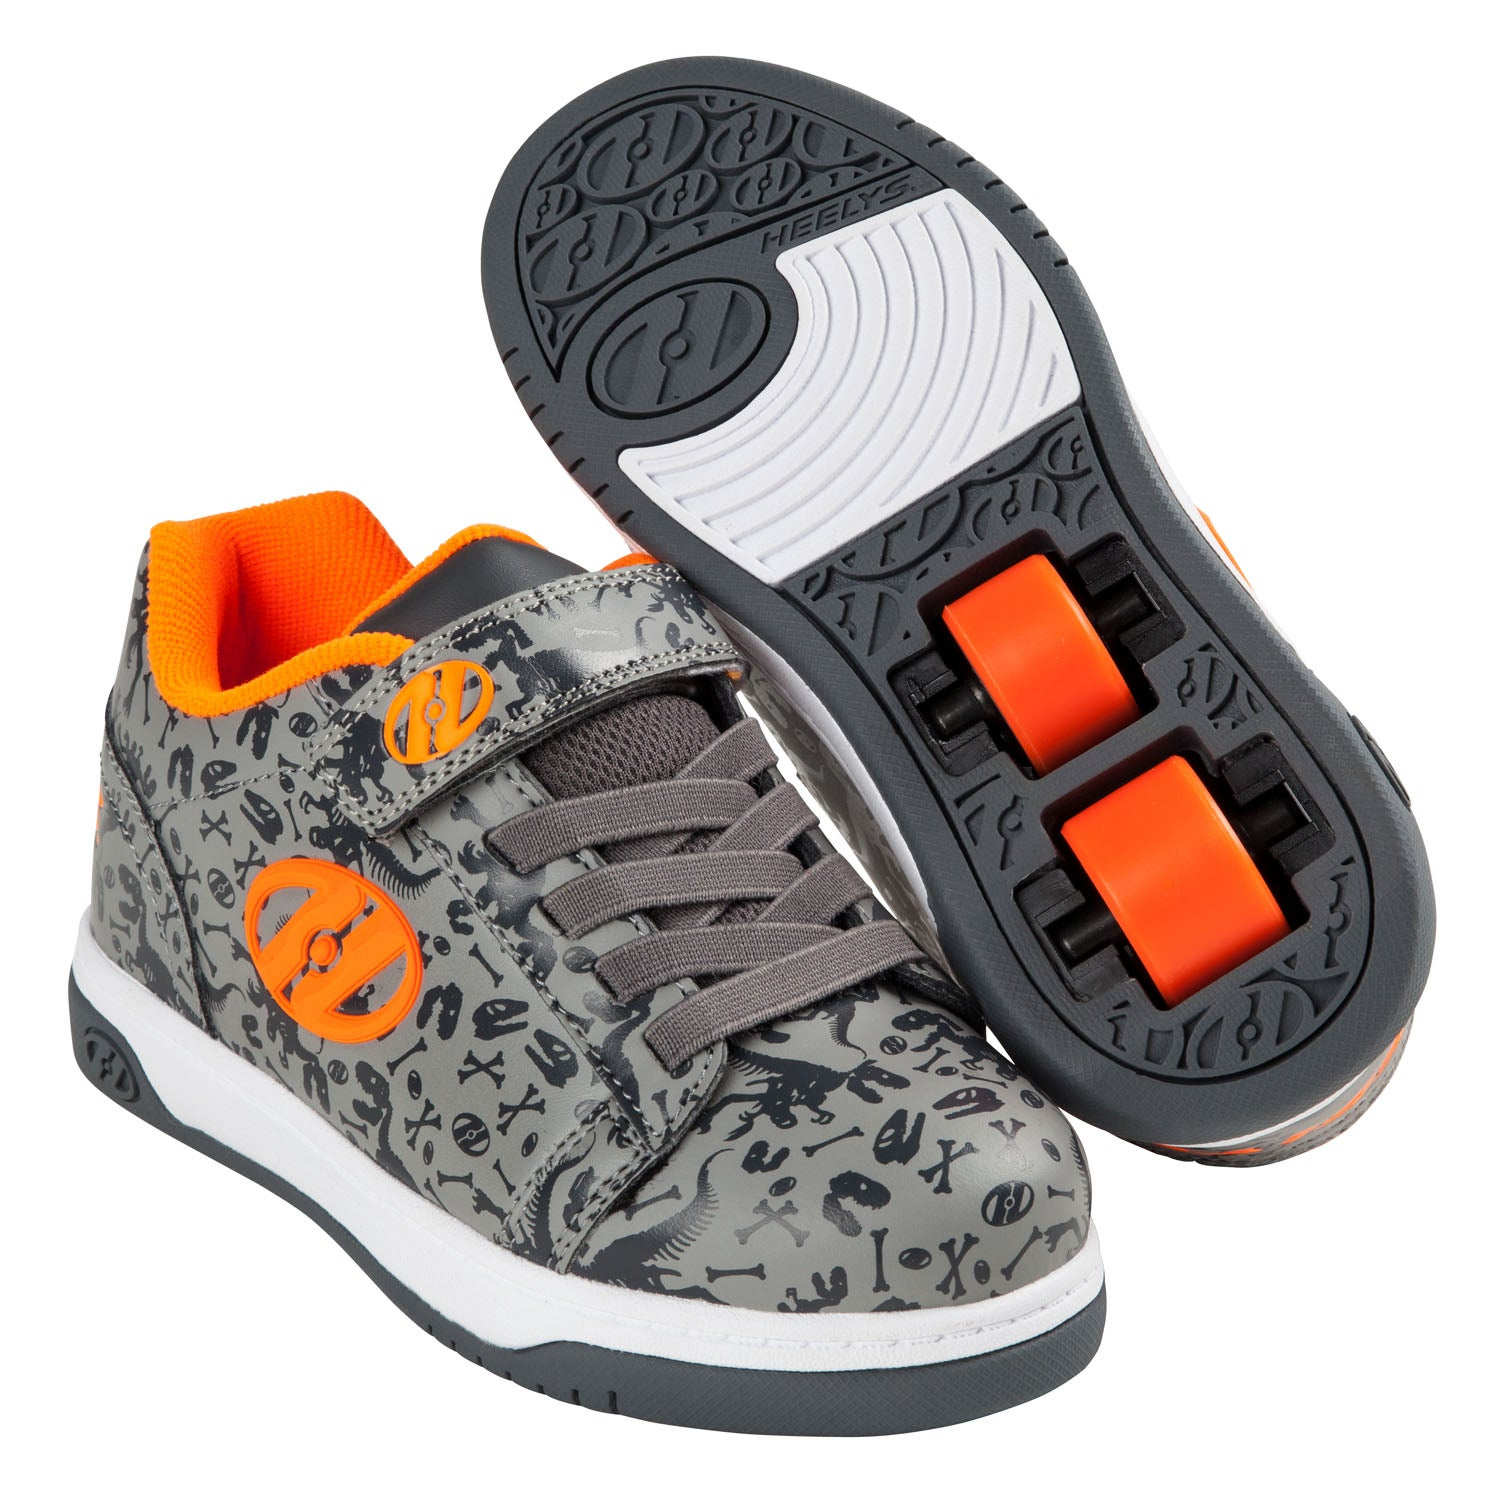 2020 Adidas Cloudfoam Racer Tr Scarlet Core Black Footwear White Where Do They Sell Roller Skates  Men's adidas Shoes